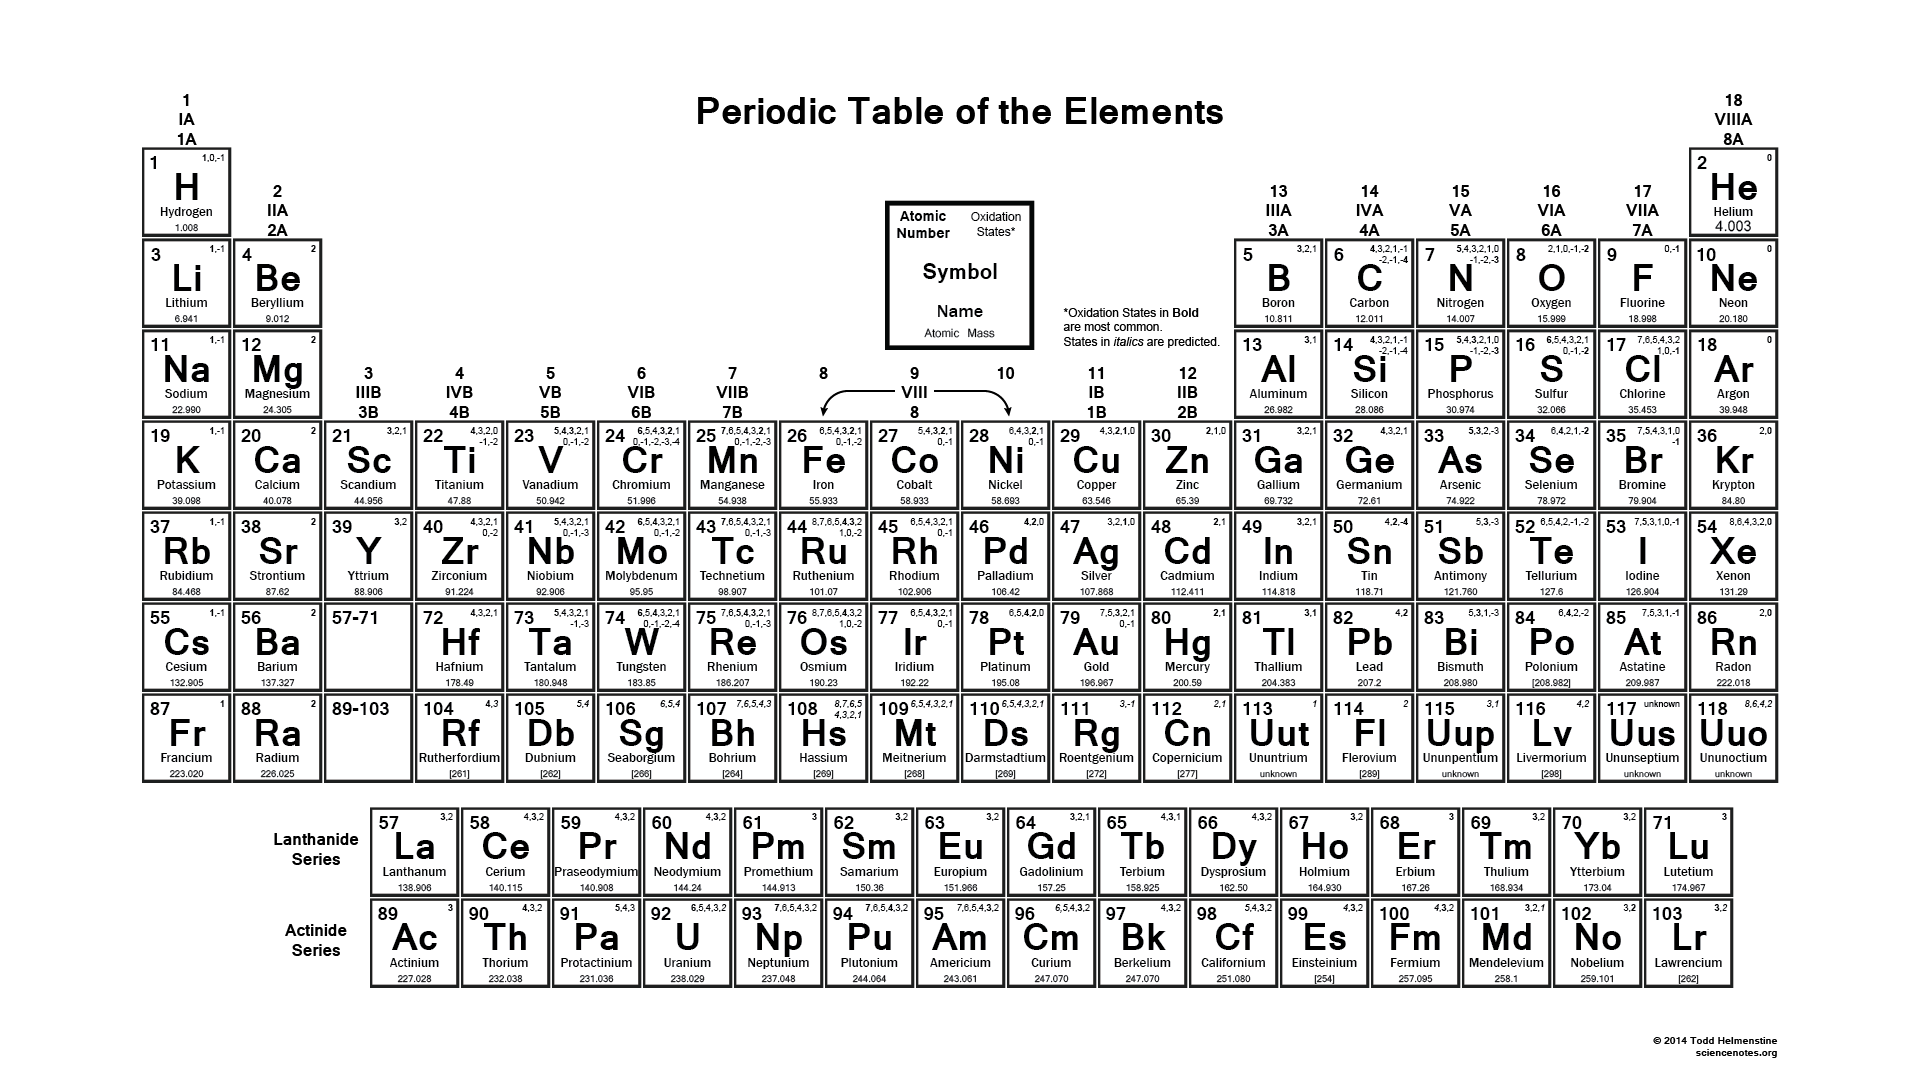 Printable periodic table oxidation states click for full size this table is gamestrikefo Choice Image